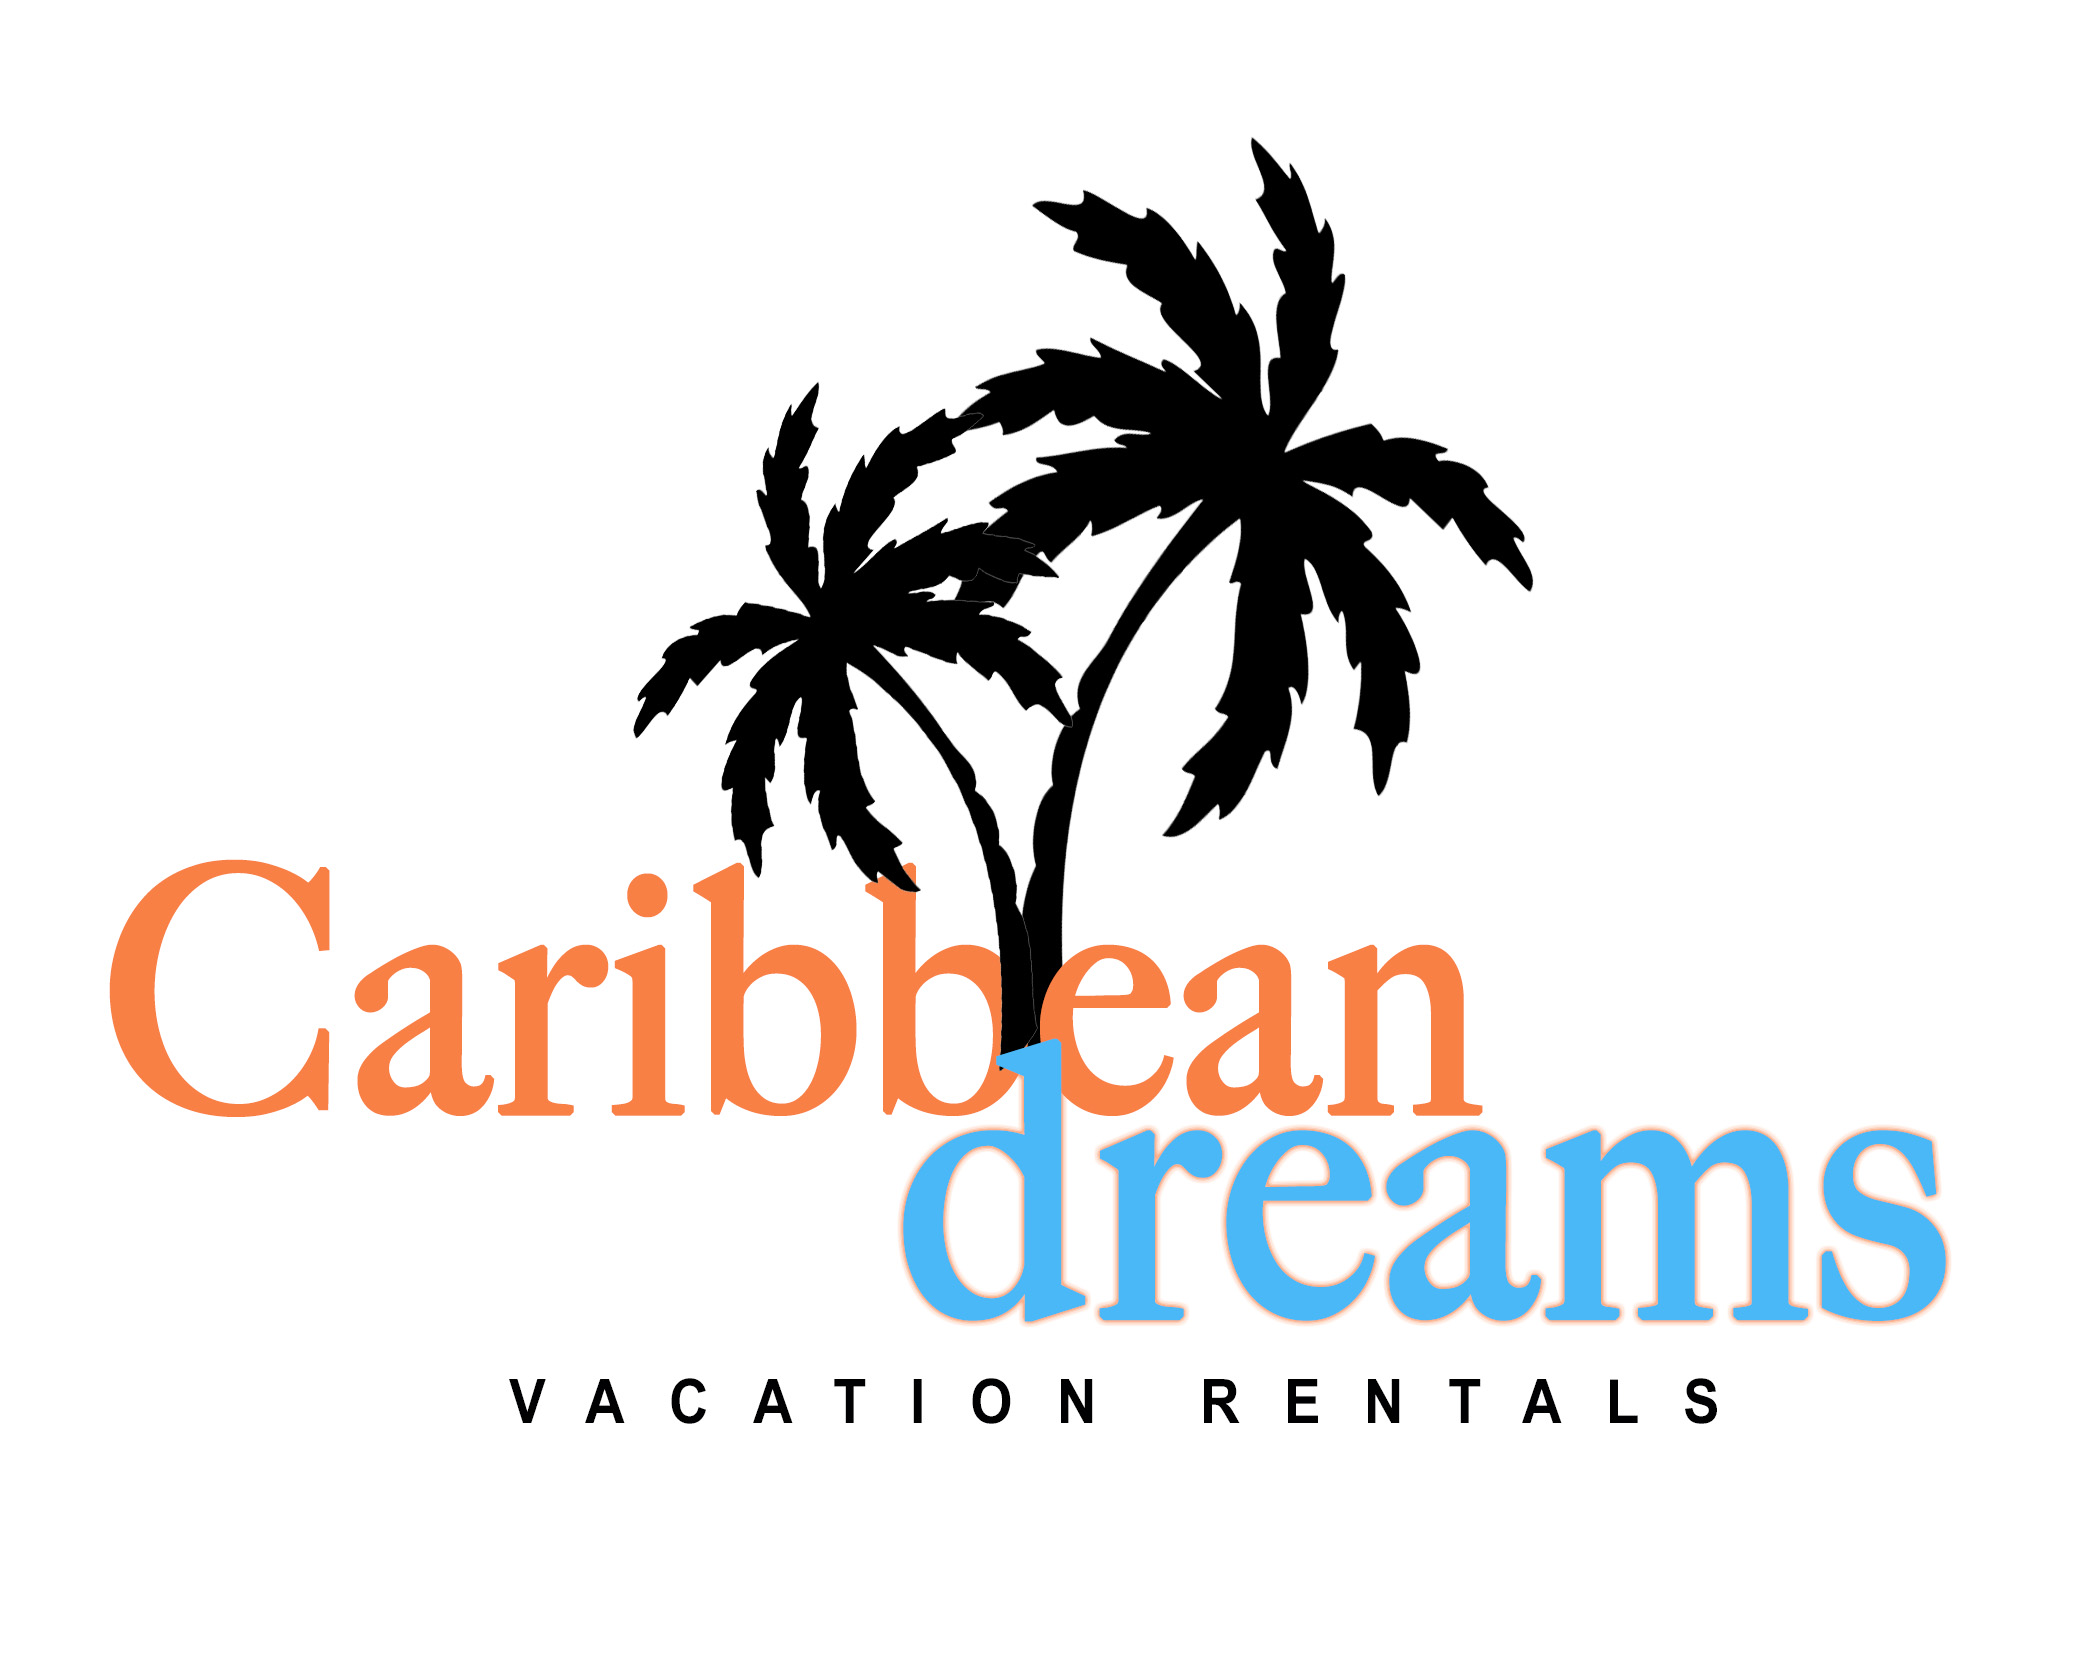 Caribbean Dreams Vacation